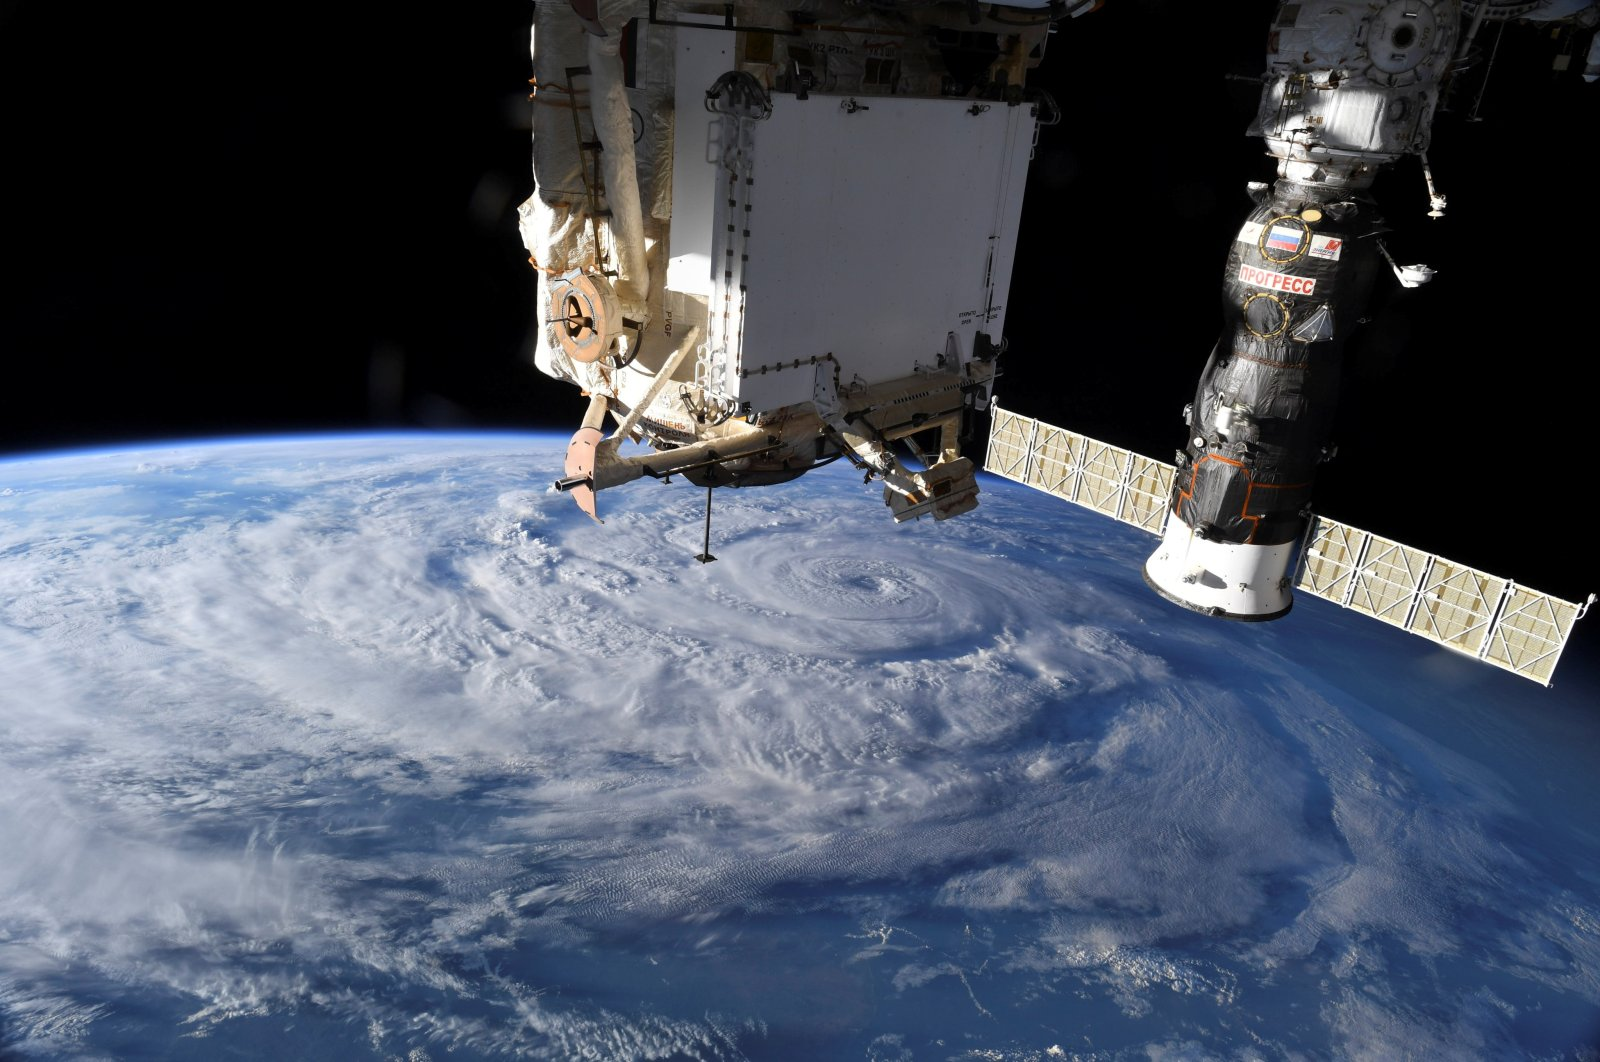 Hurricane Genevieve is seen from the International Space Station (ISS) orbiting Earth in an image taken by NASA astronaut Christopher J. Cassidy, Aug. 19, 2020. (NASA Photo via Reuters)